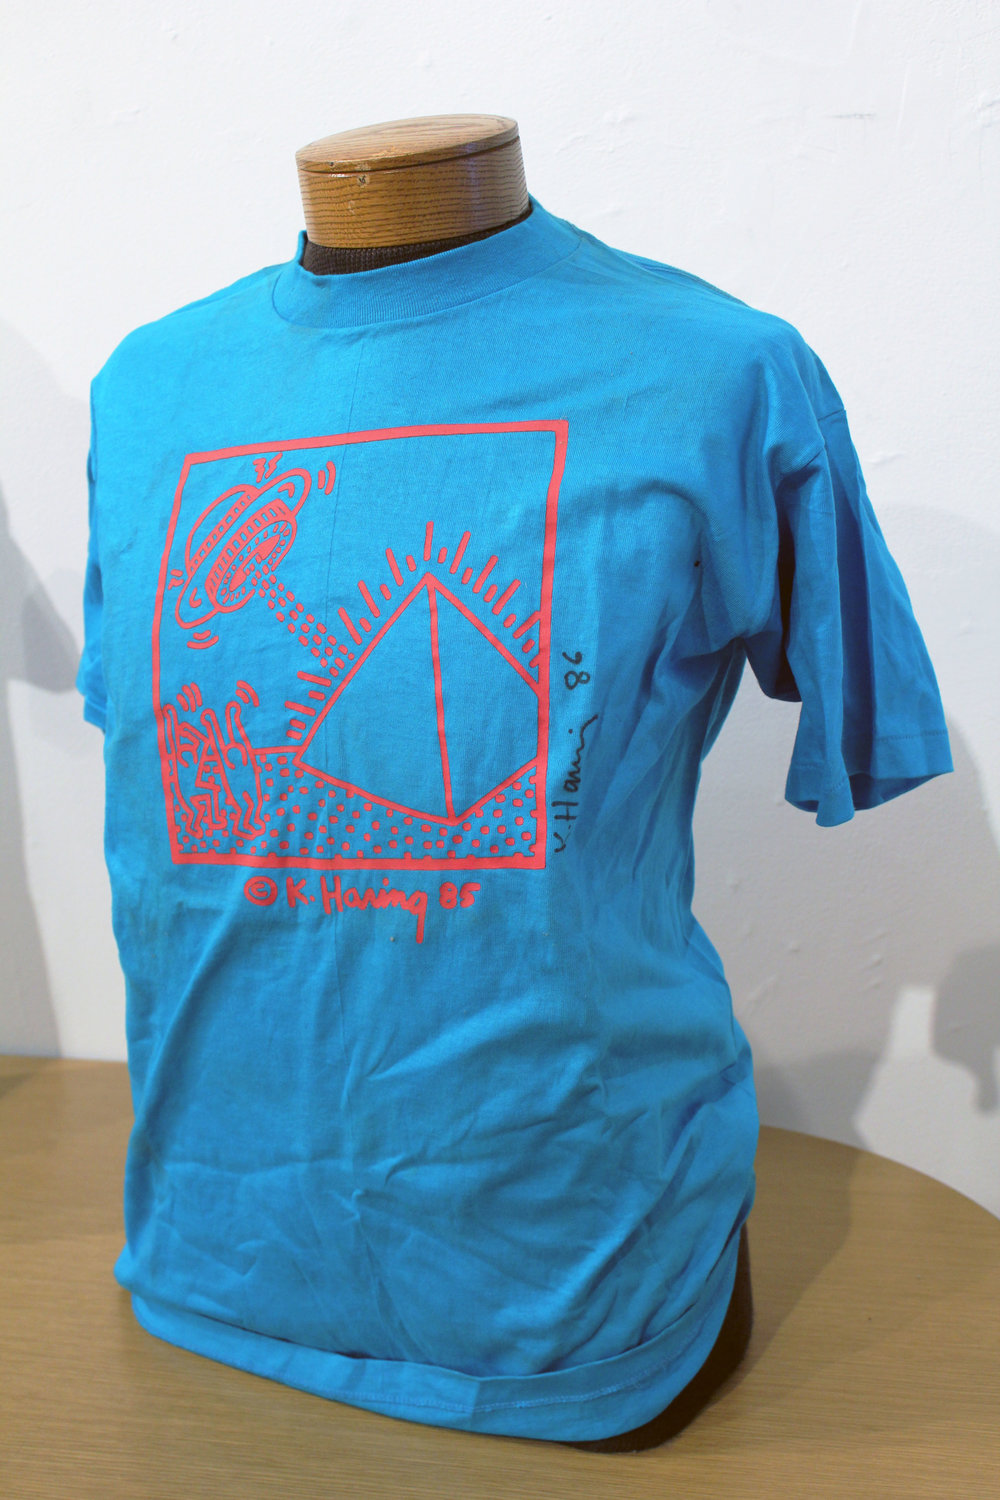 Upcoming highlights santa monica auctions after keith haring untitled shirt blue 198586 cotton t shirt reviewsmspy